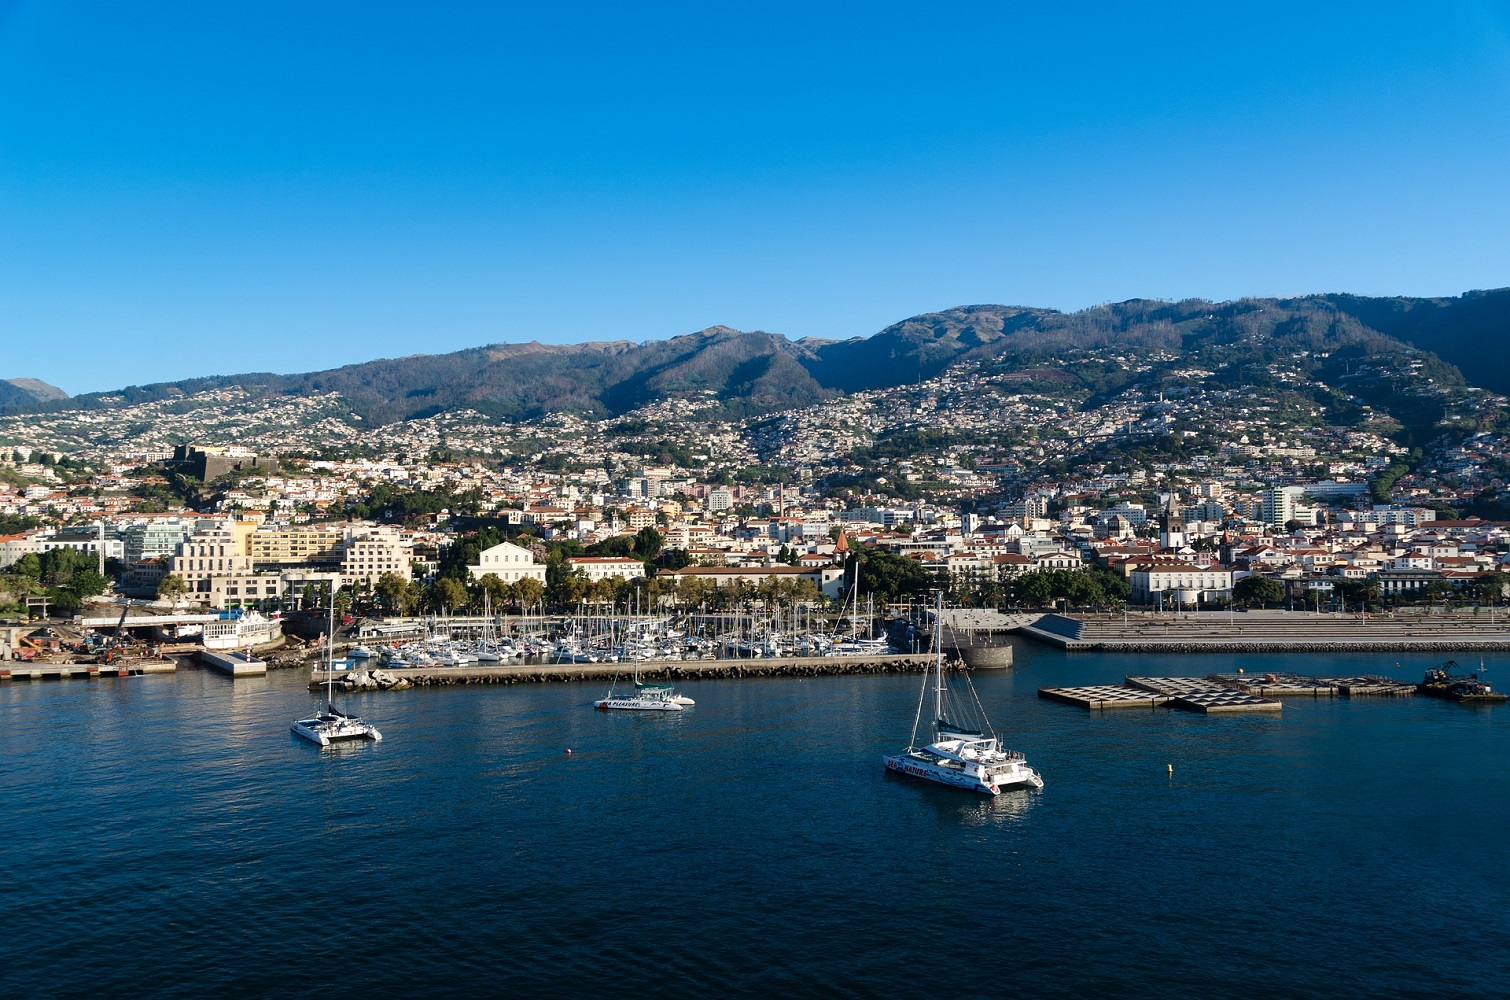 Funchal Harbour, Madeira